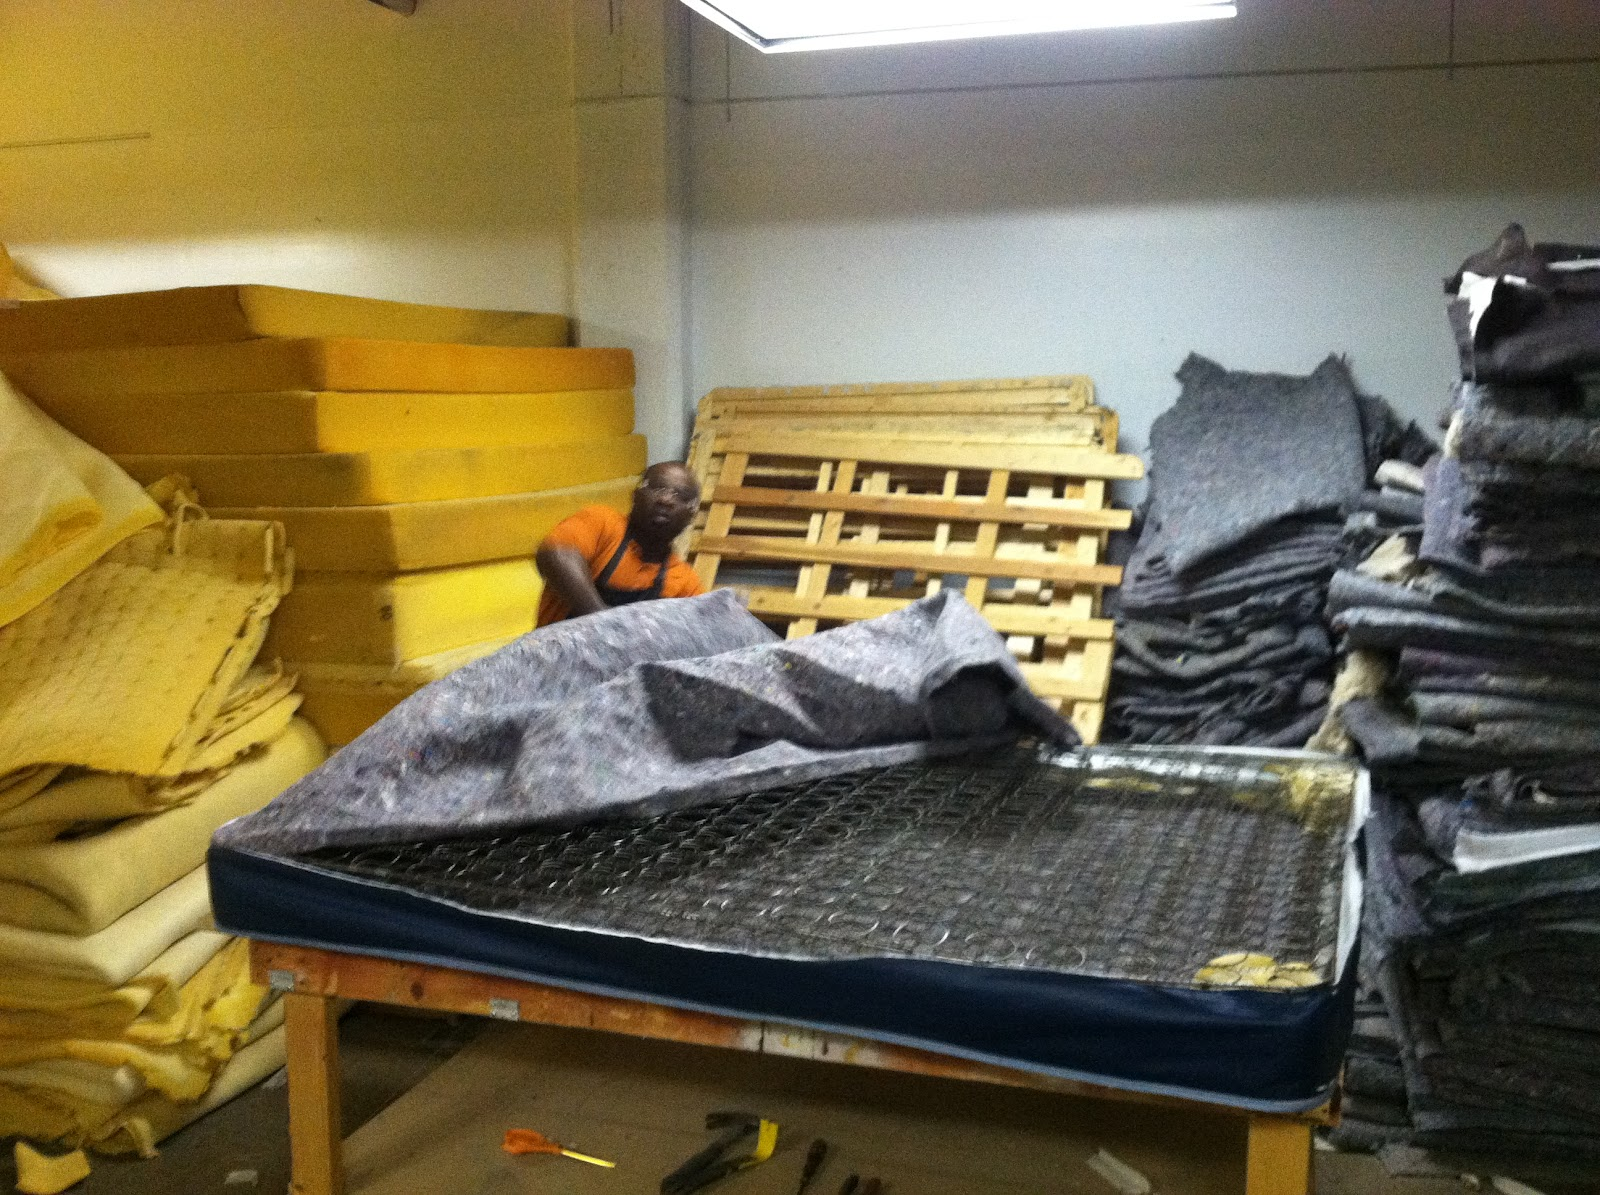 recycle old mattresses at bud s warehouse bud s warehouse denver 39 s home improvement thrift. Black Bedroom Furniture Sets. Home Design Ideas